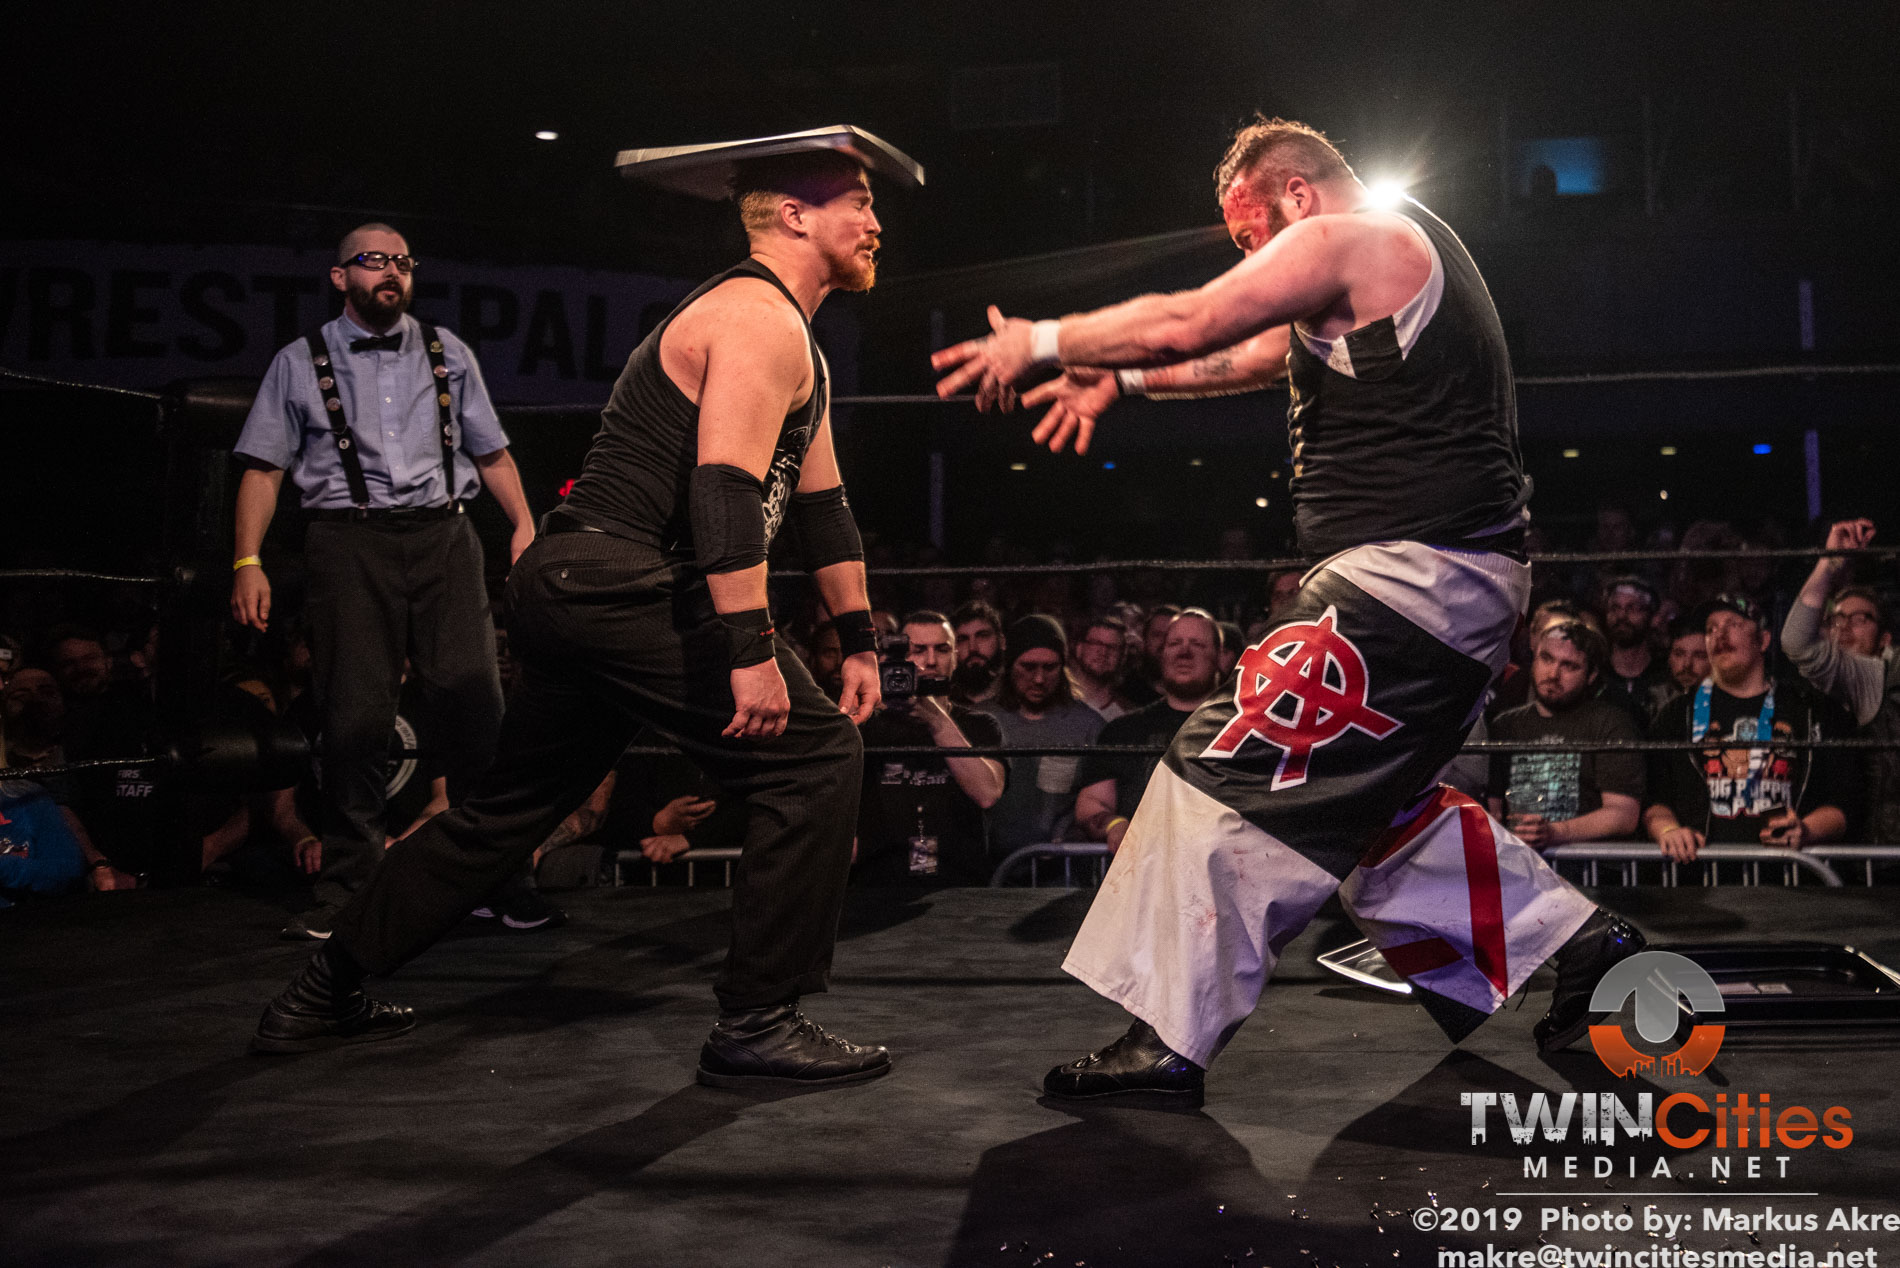 Wrestlepalooza - Match 4-13